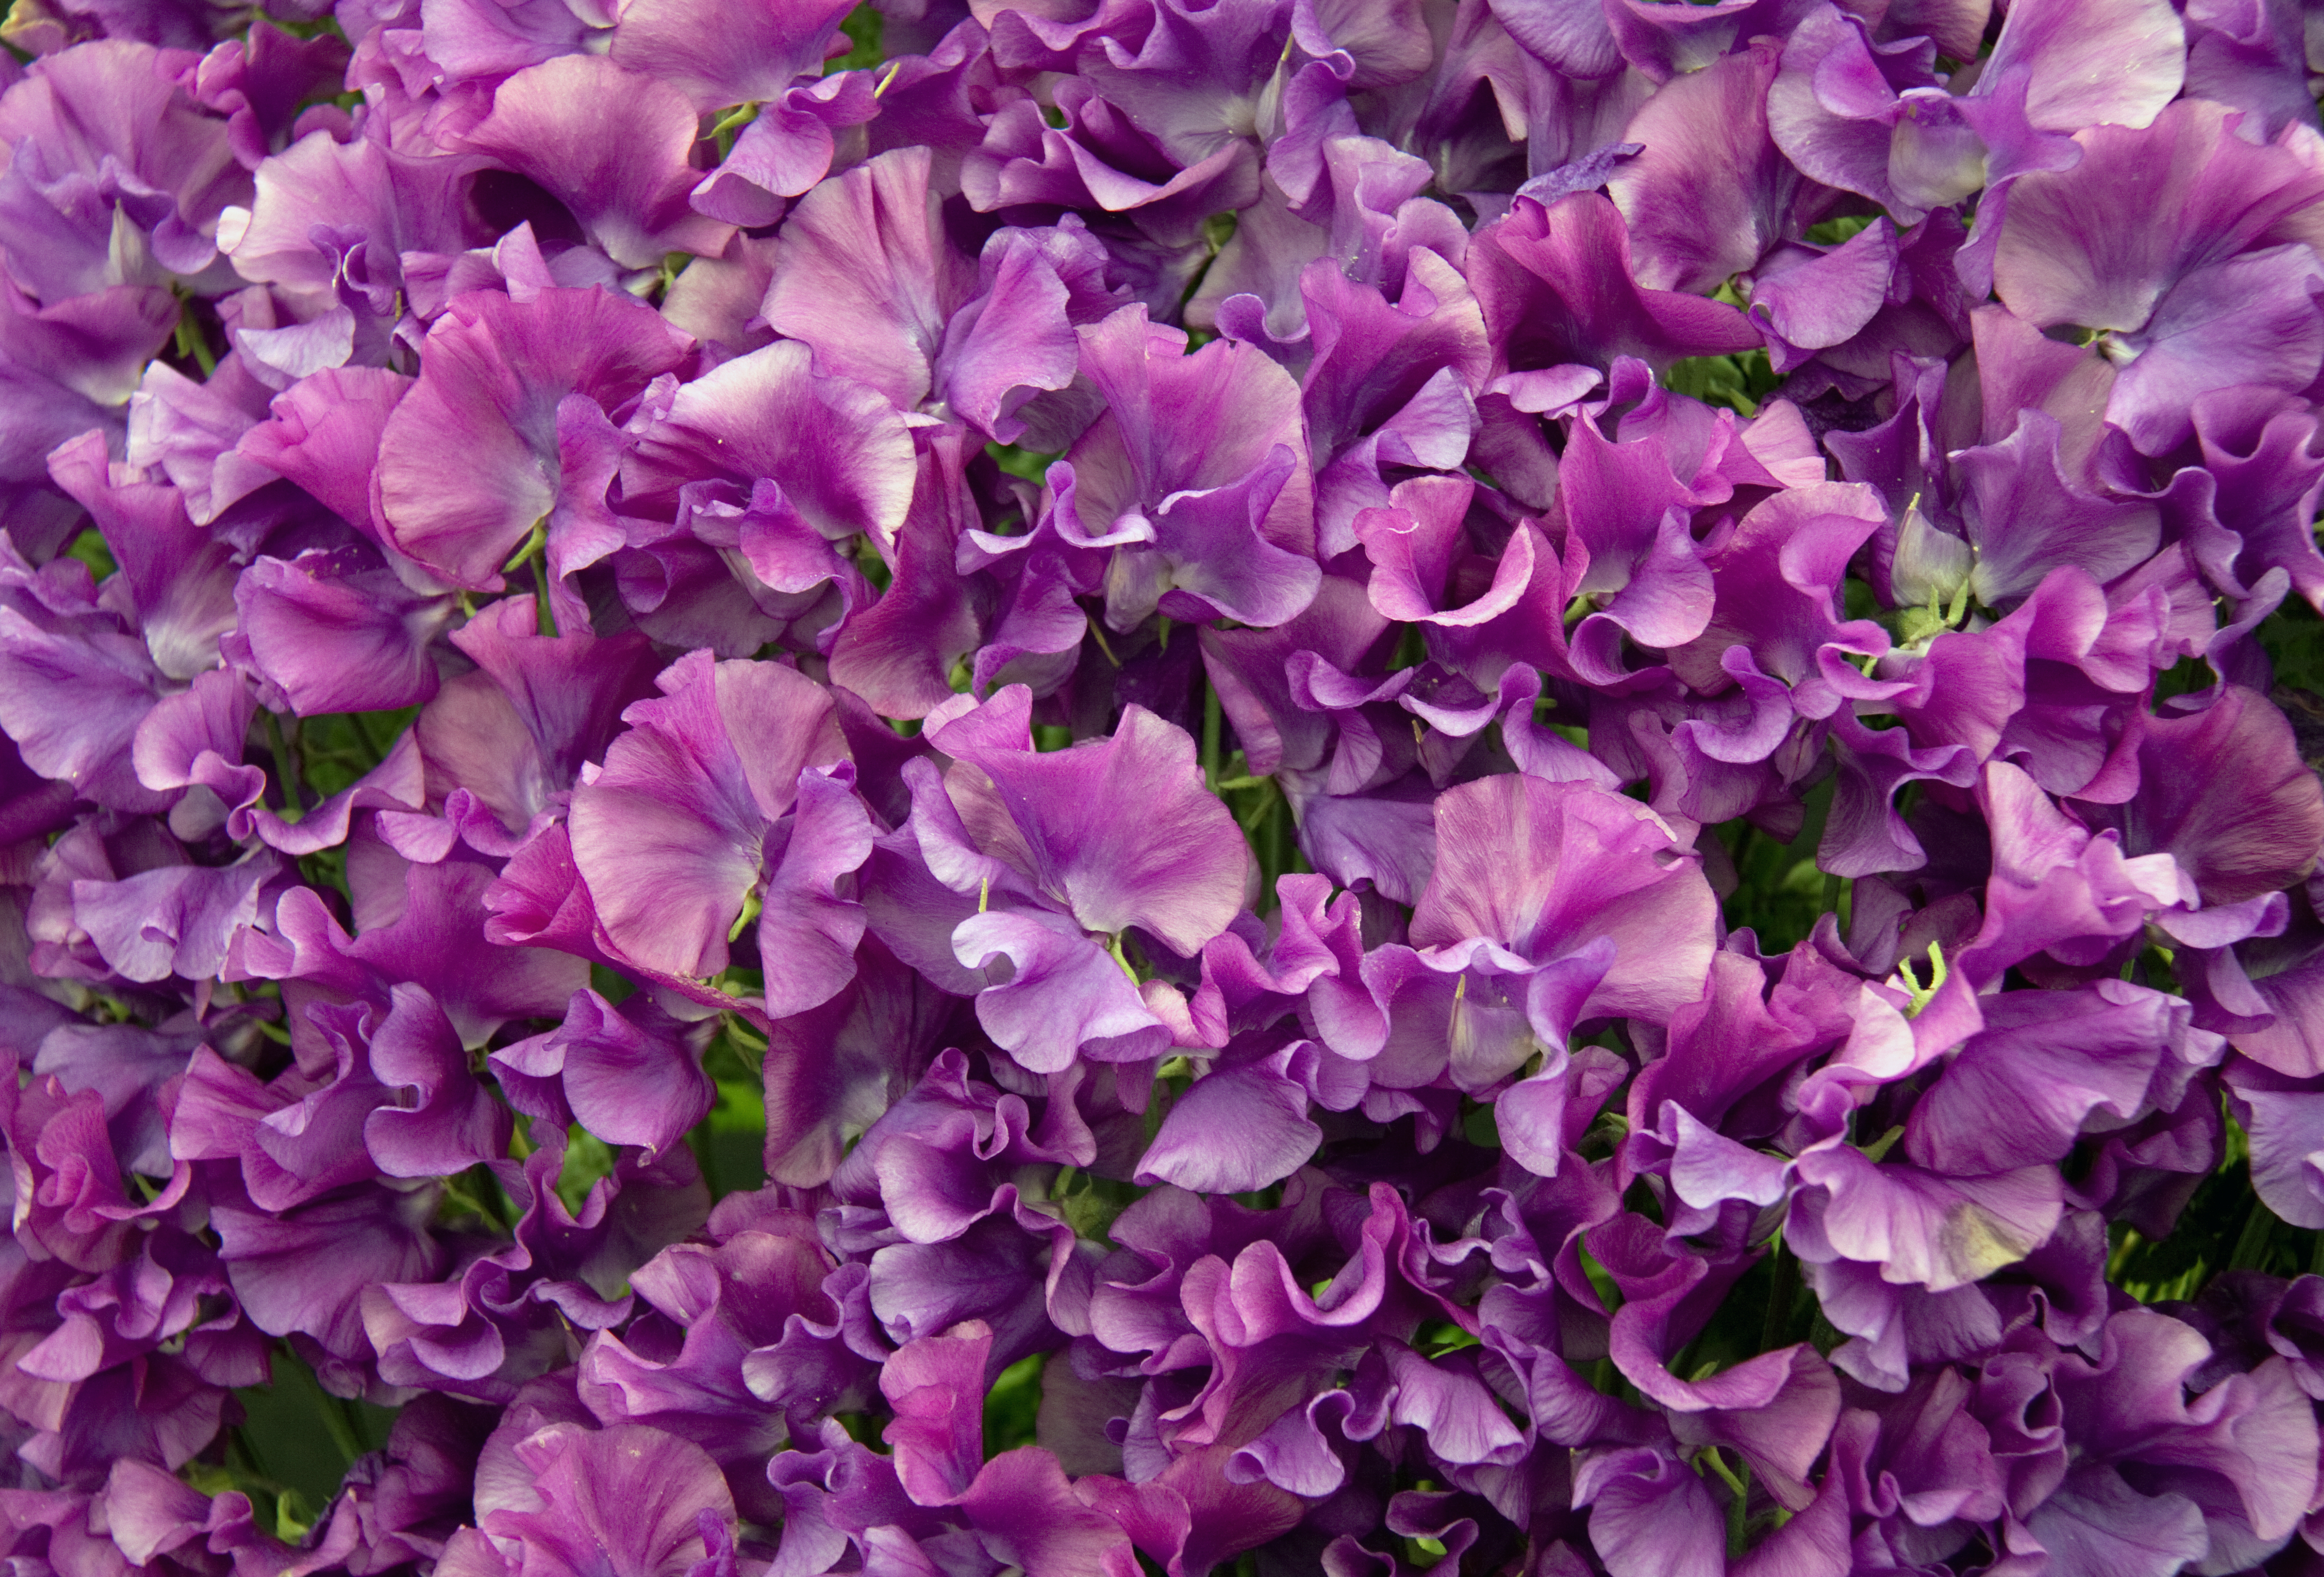 1000 images about Flowers Purple on Pinterest